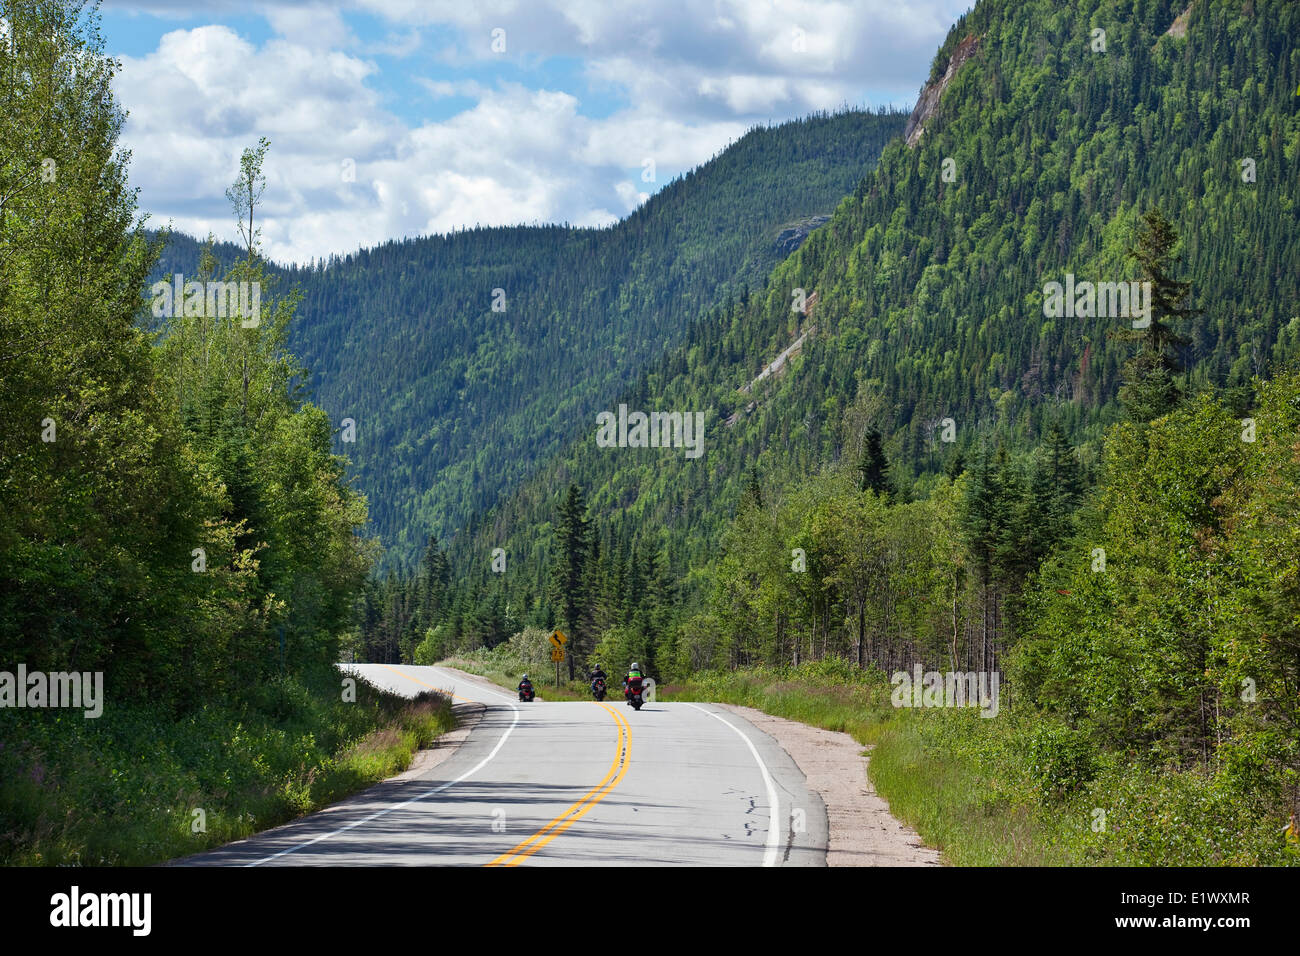 Motocyclists touring on a road that cuts through a mountain range in ...